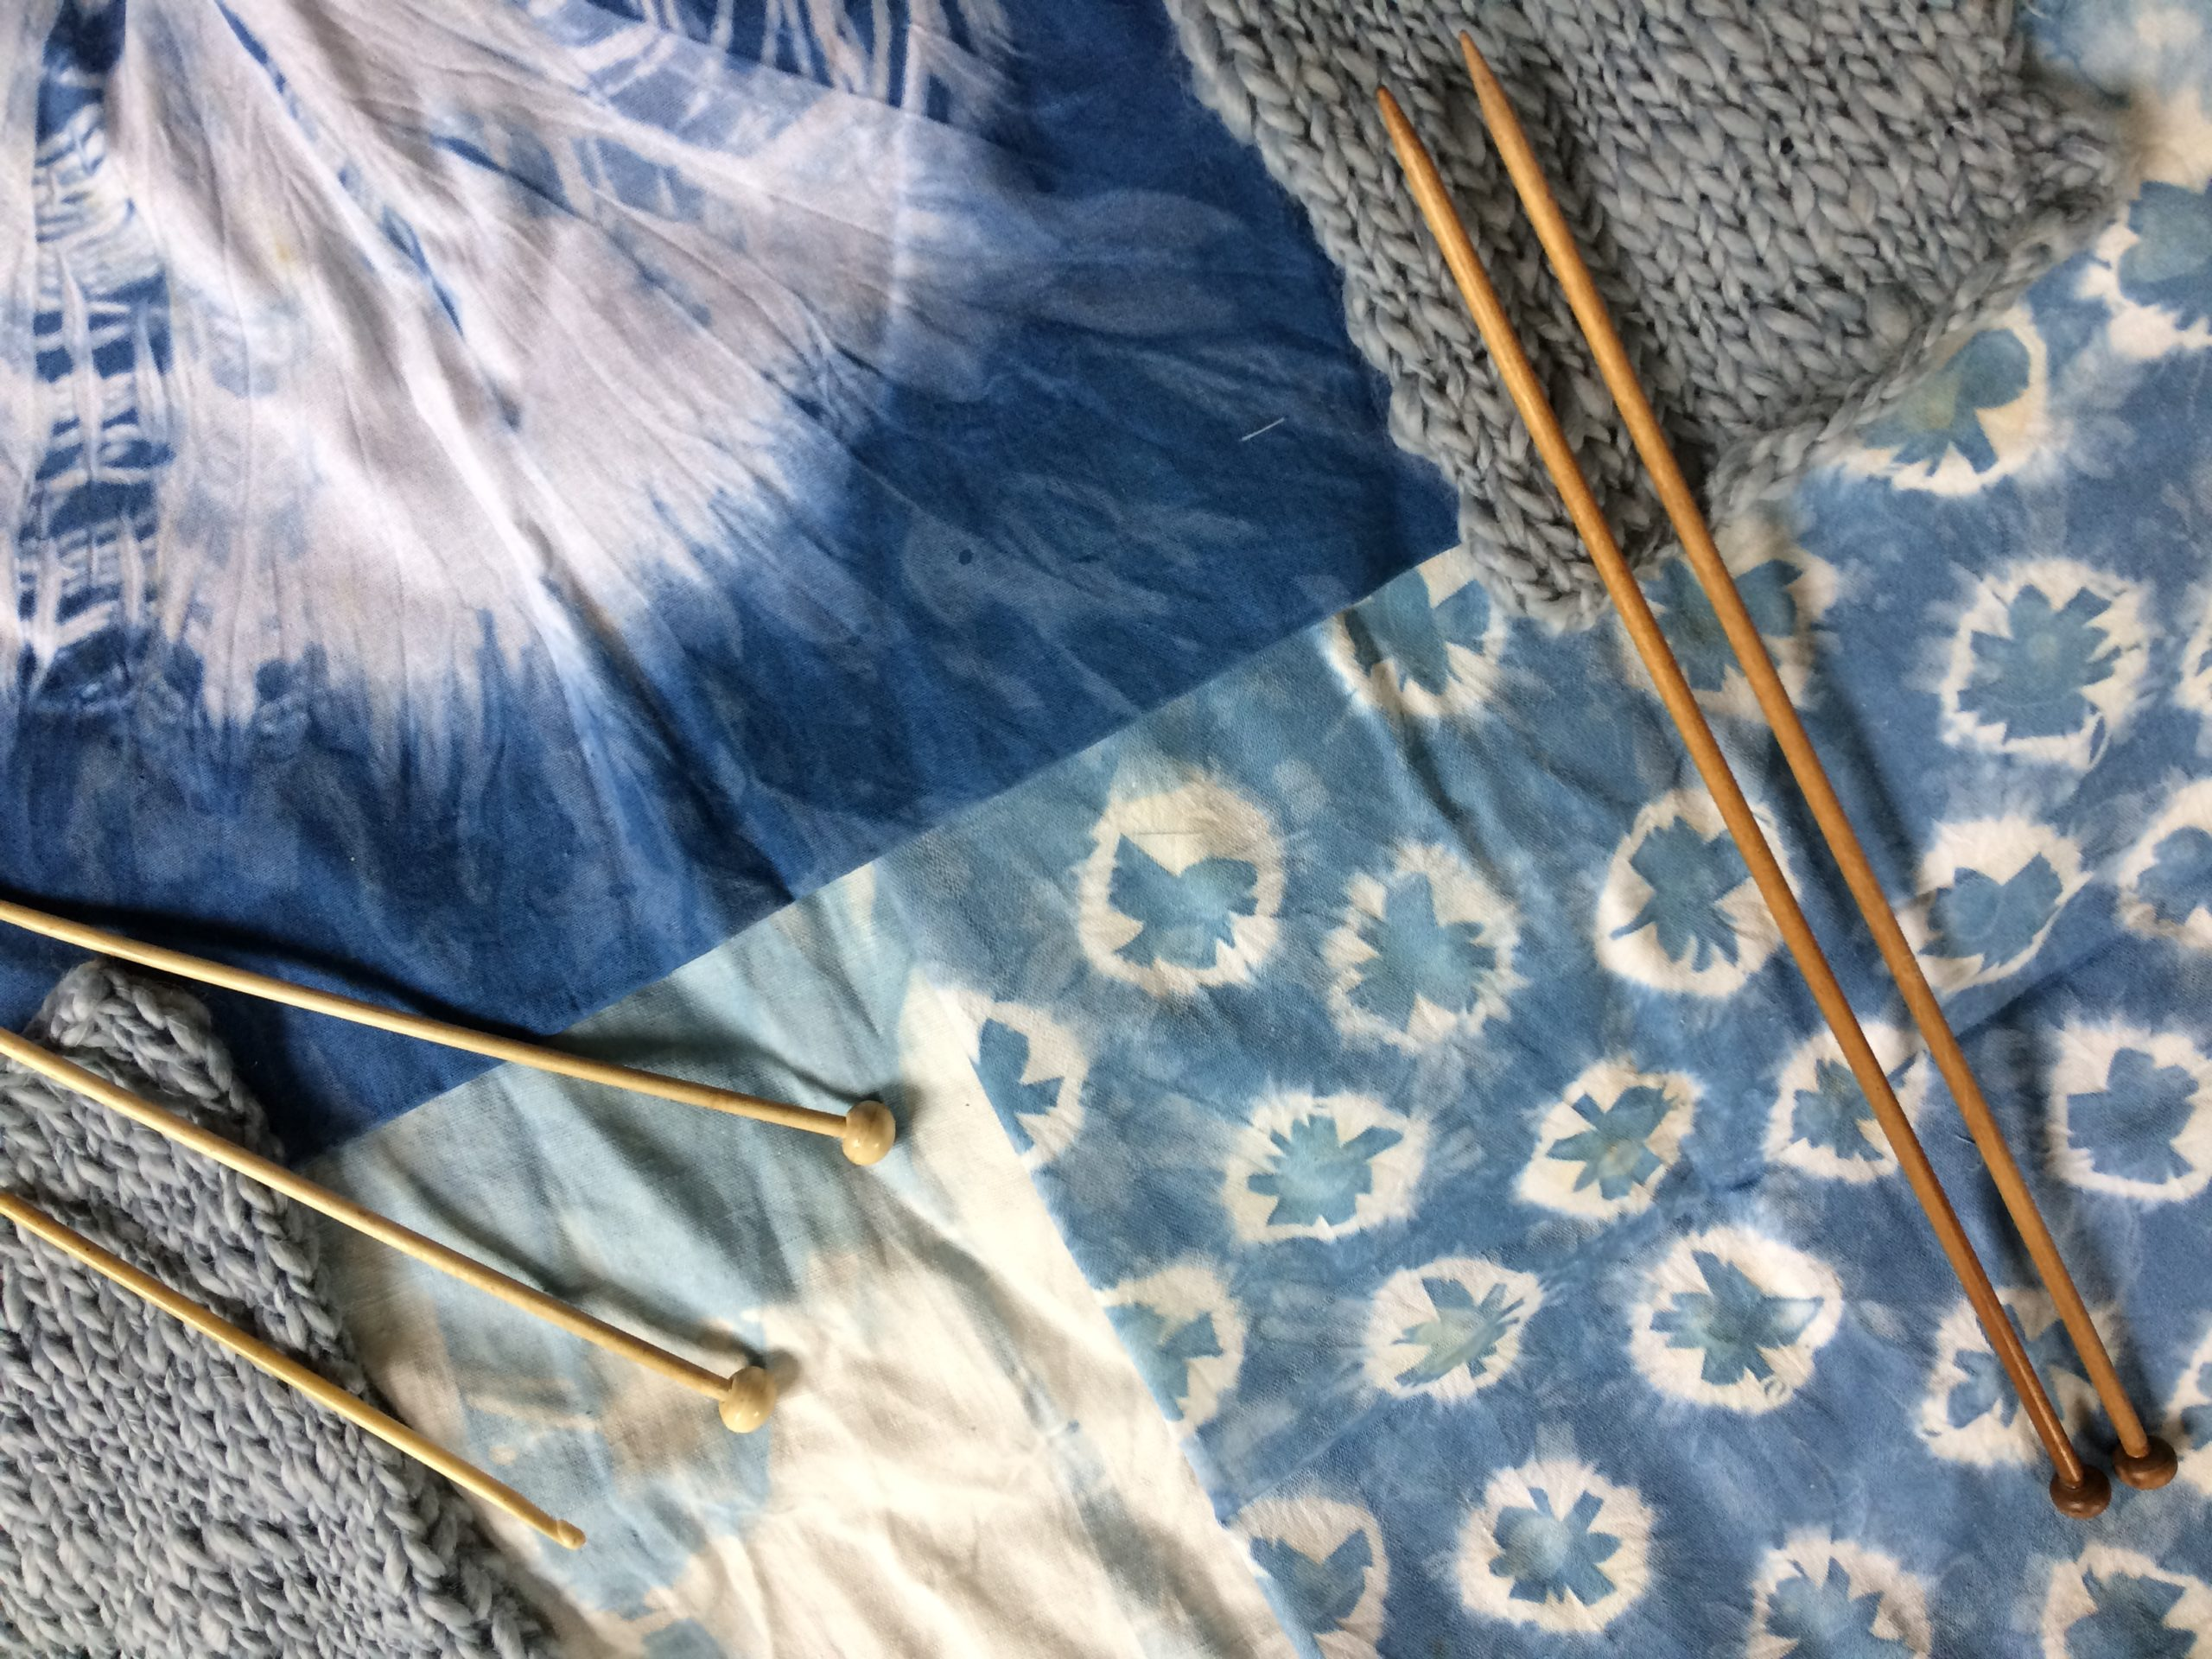 Naturally dyed fabric in blues with knitting needles